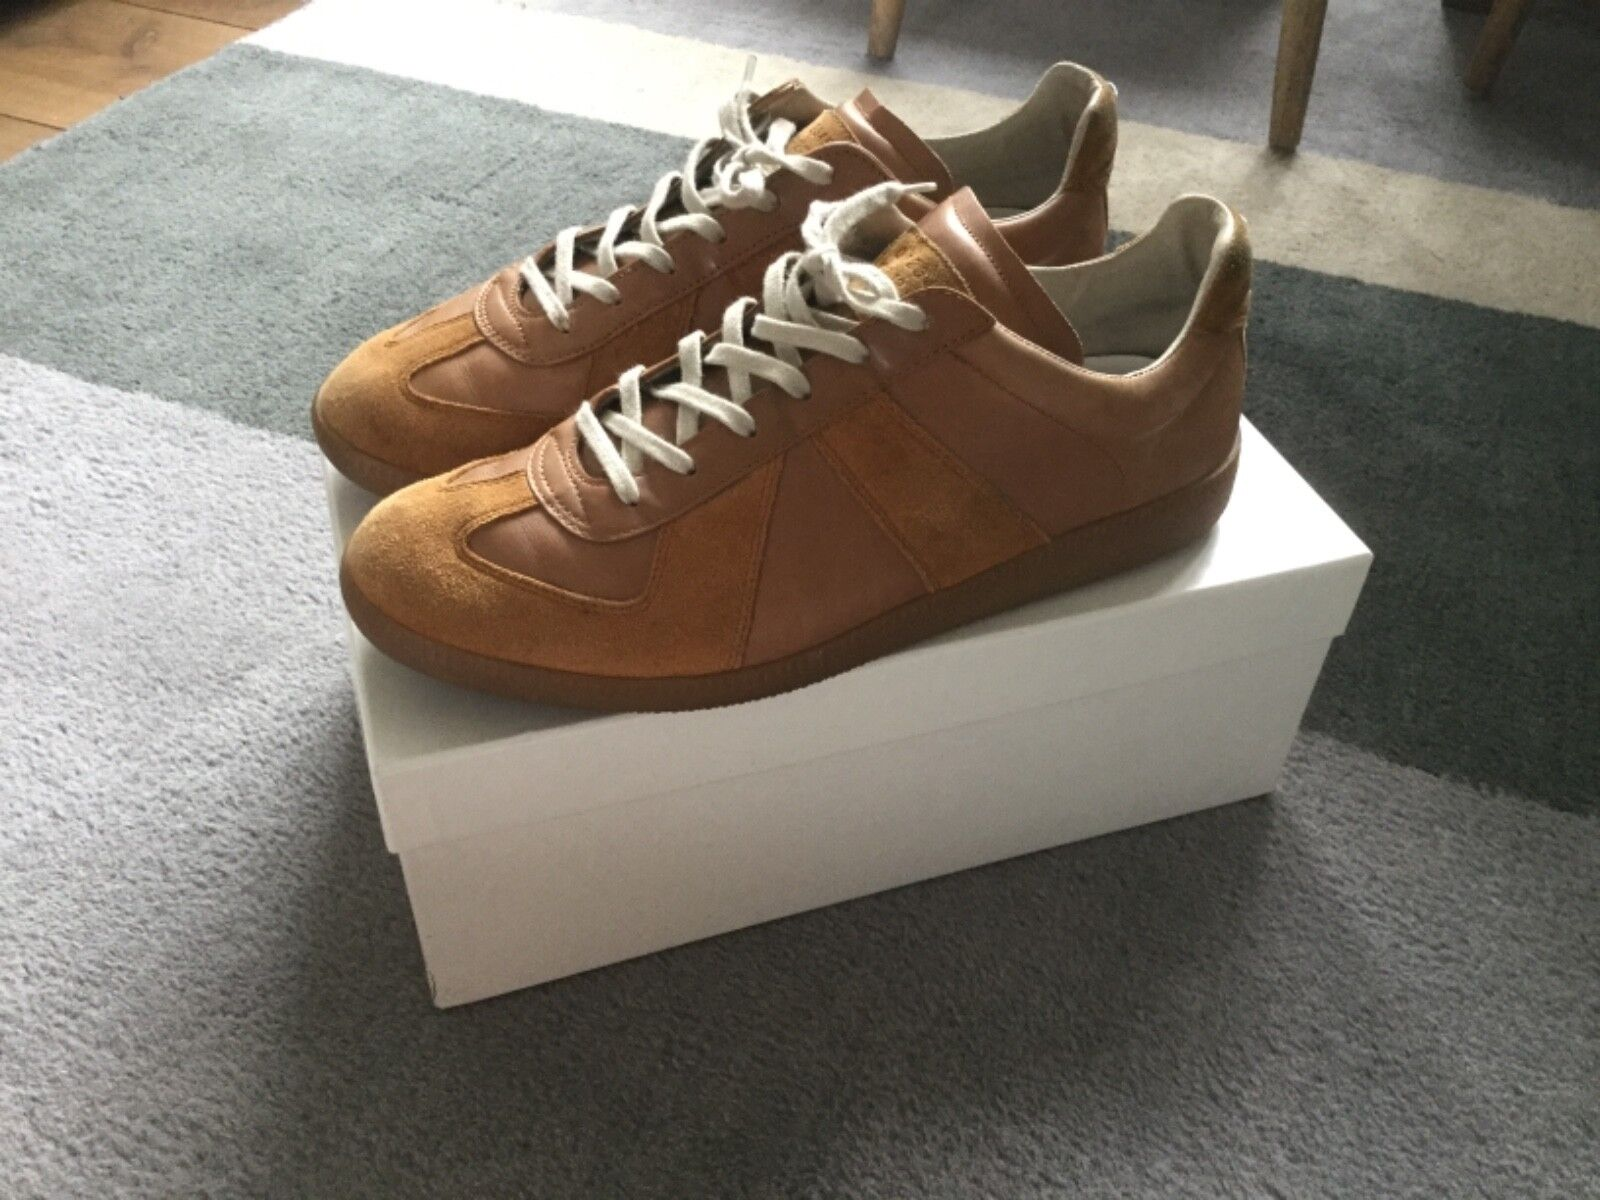 MARTIN MARGIELA 10 TRAINERS  SIZE IS 43 or